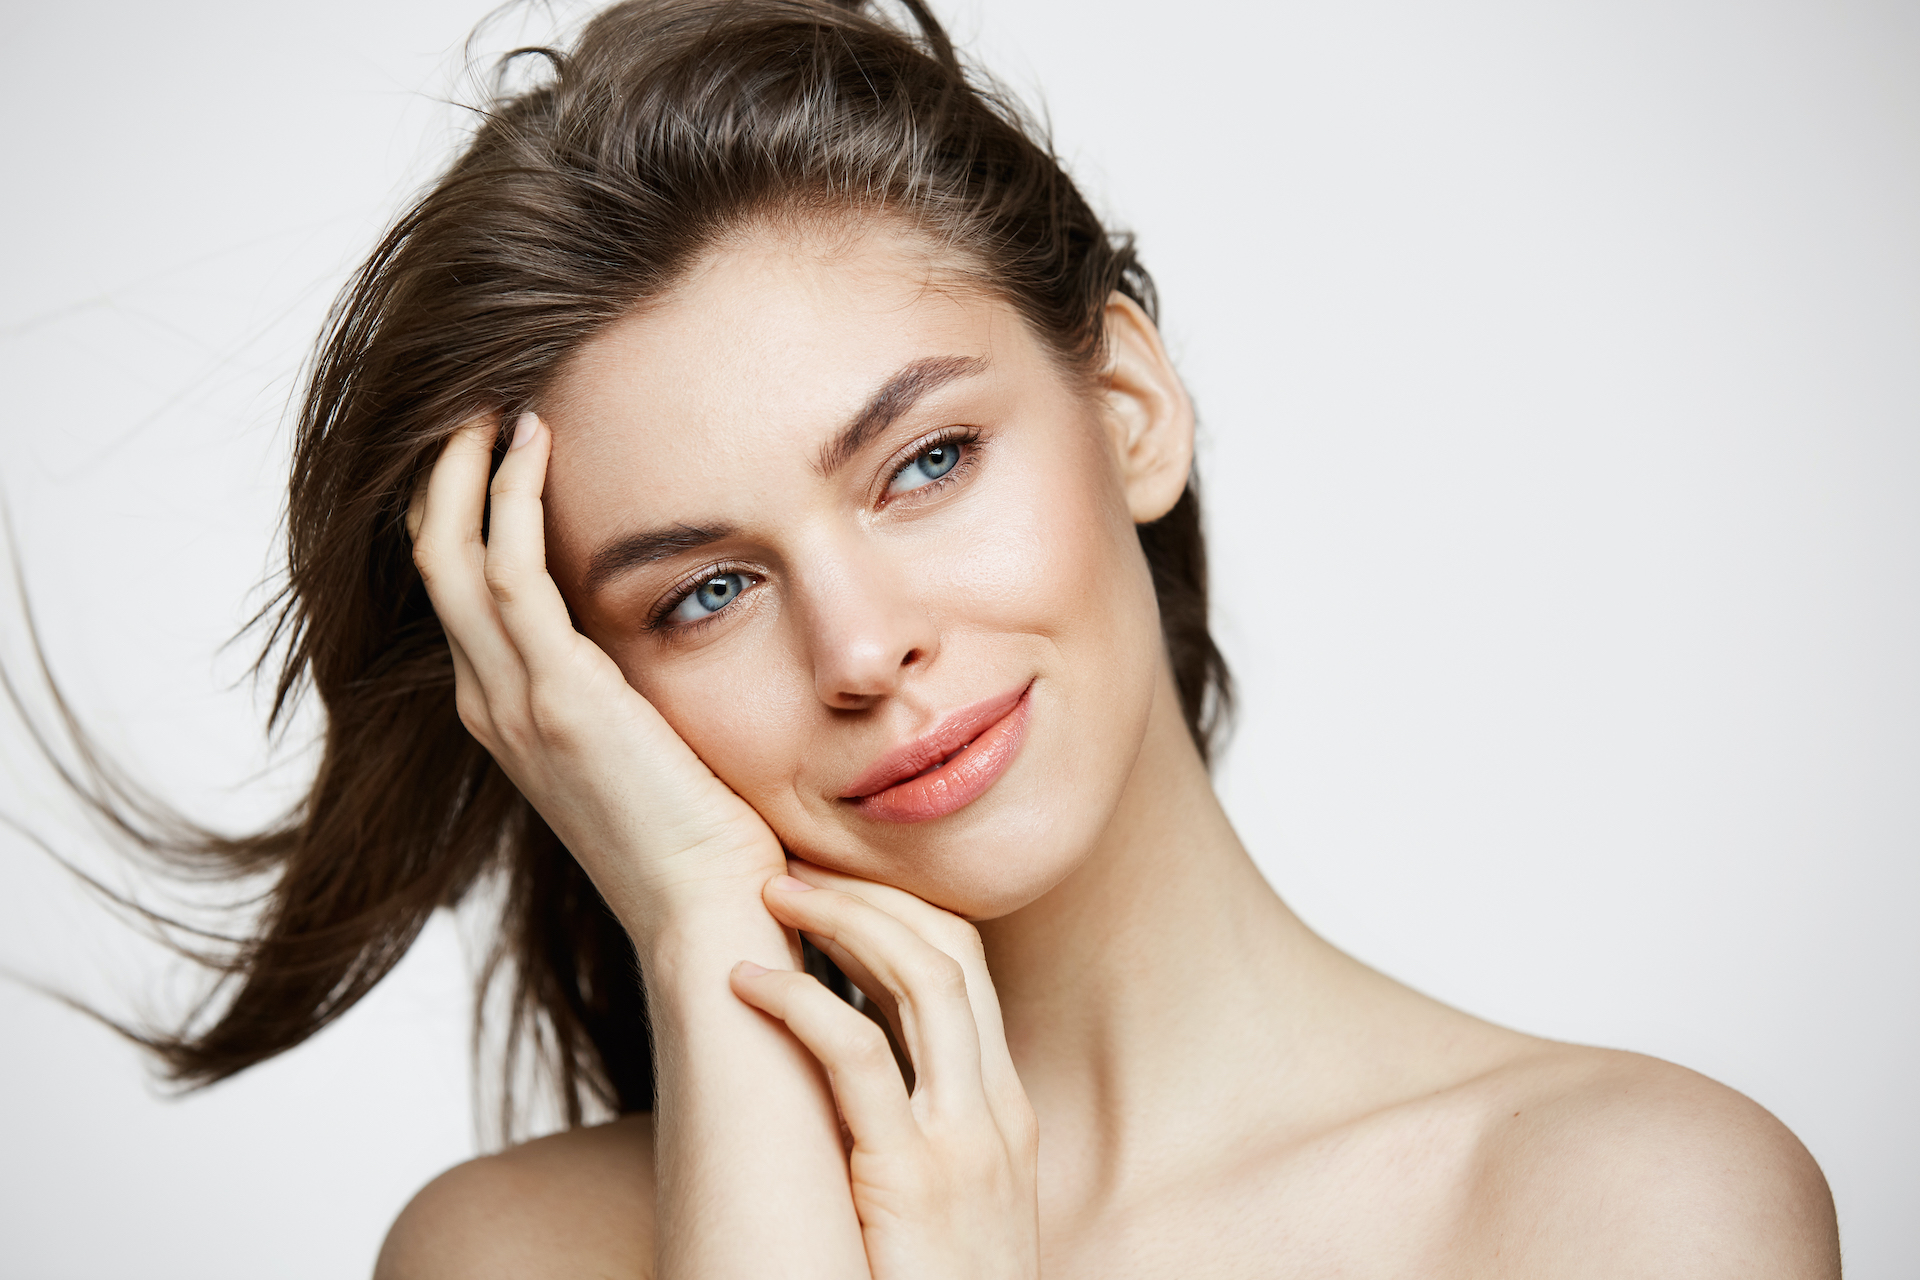 Nose surgery service in KL Malaysia